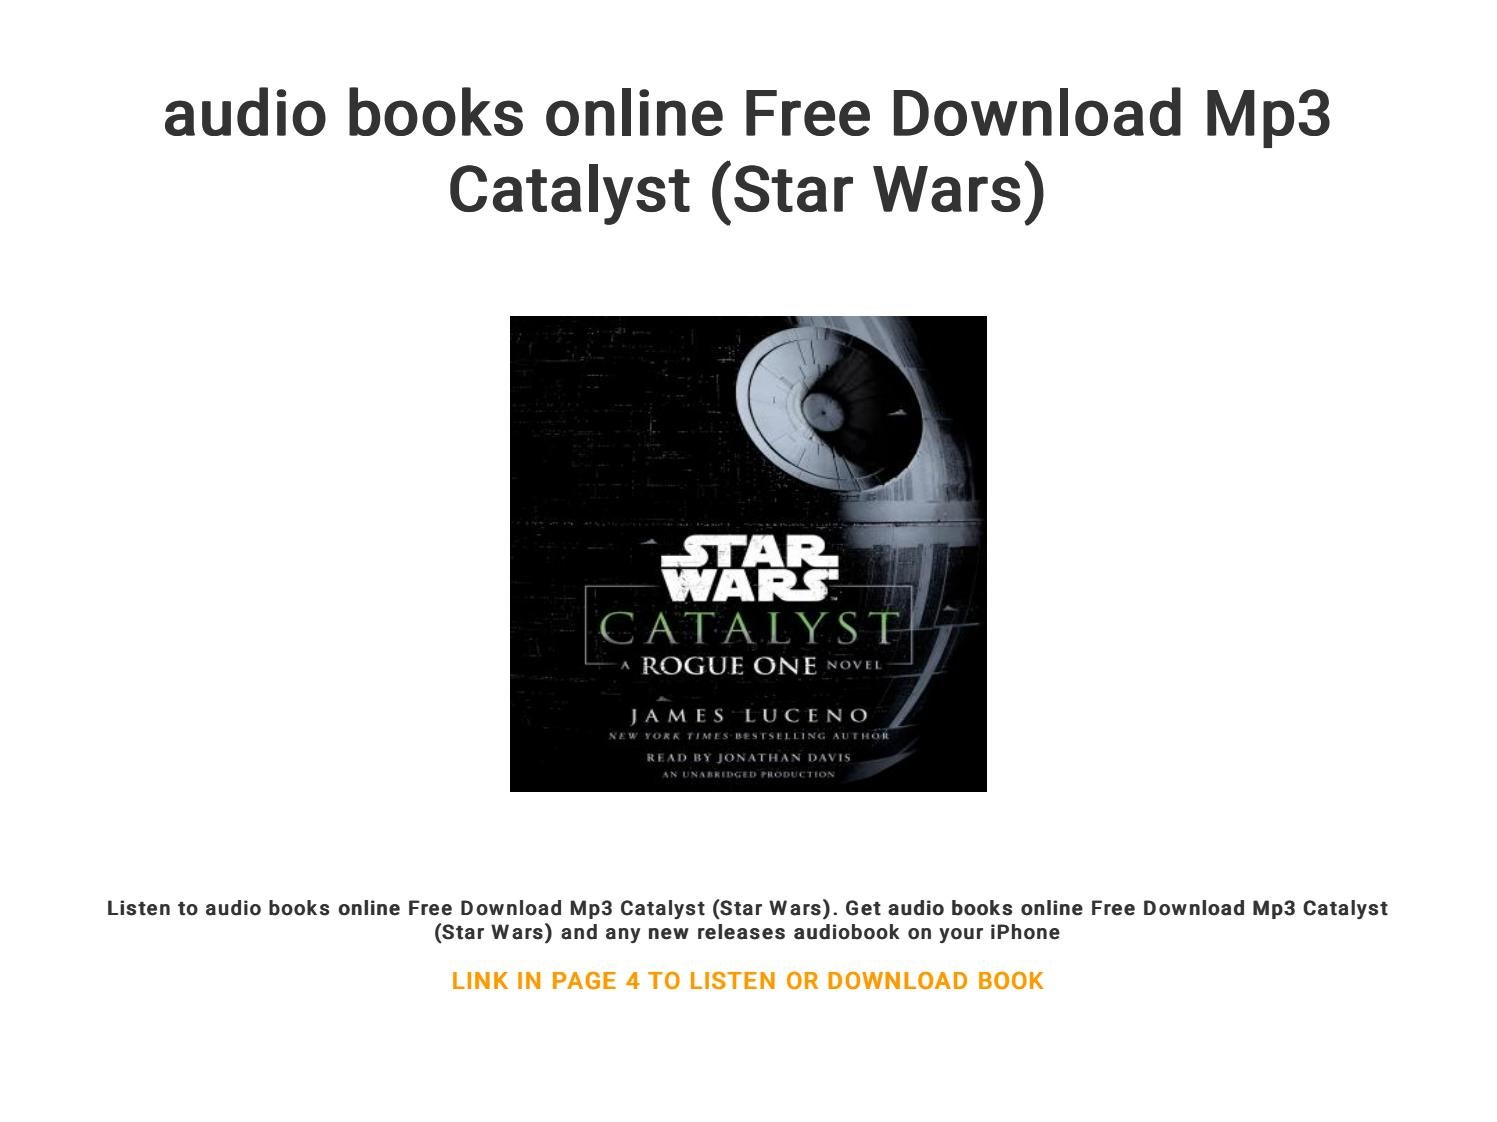 audio books online Free Download Mp3 Catalyst (Star Wars) by